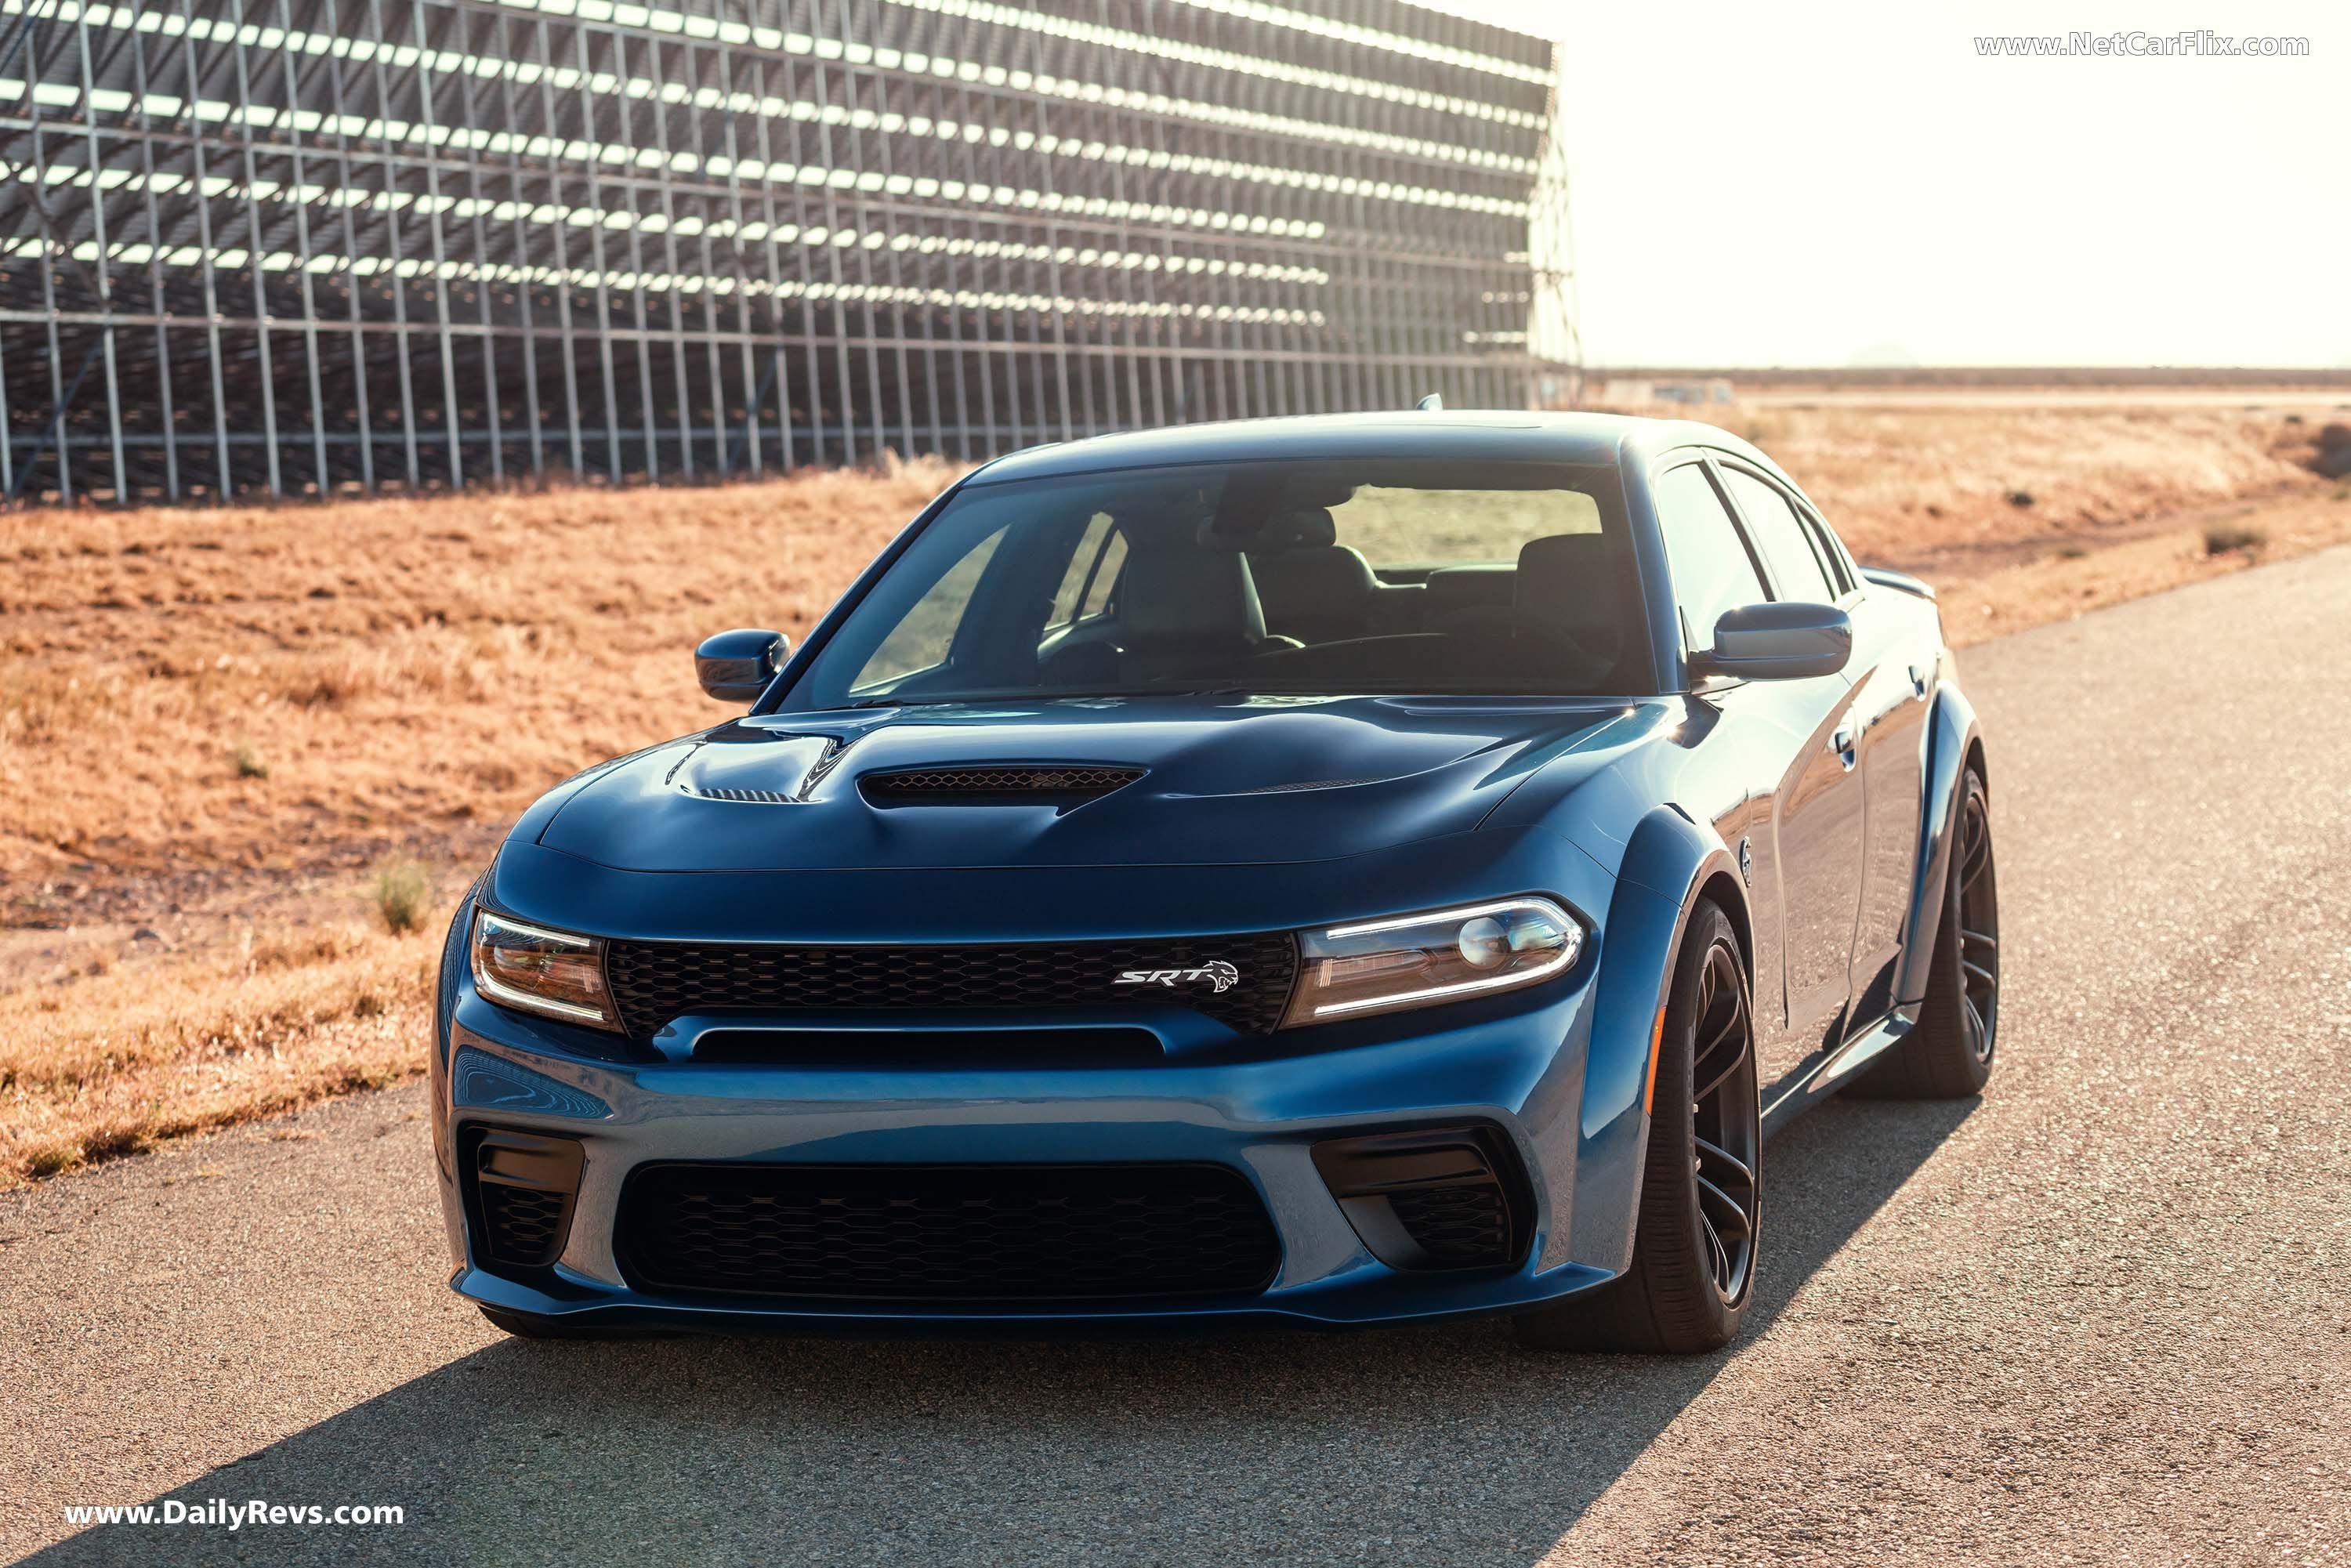 2020 Dodge Charger Srt Hellcat Widebody Featuring The 2020 Dodge Charger Srt Hellcat Widebody With A Gallery Of In 2020 Dodge Charger Charger Srt Charger Srt Hellcat